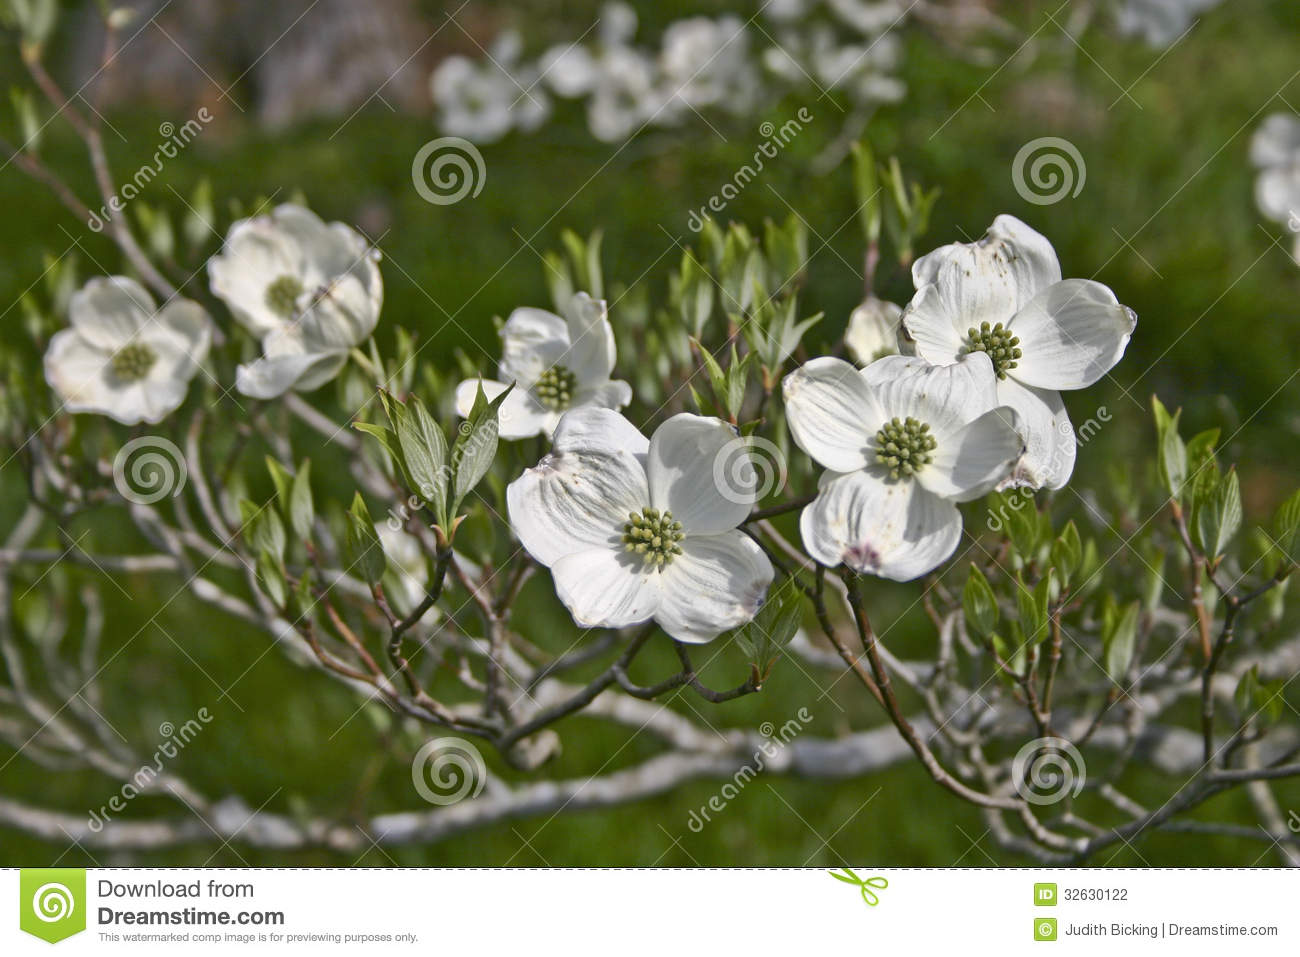 Dogwood Flowers And Tree Branch Stock Vector.